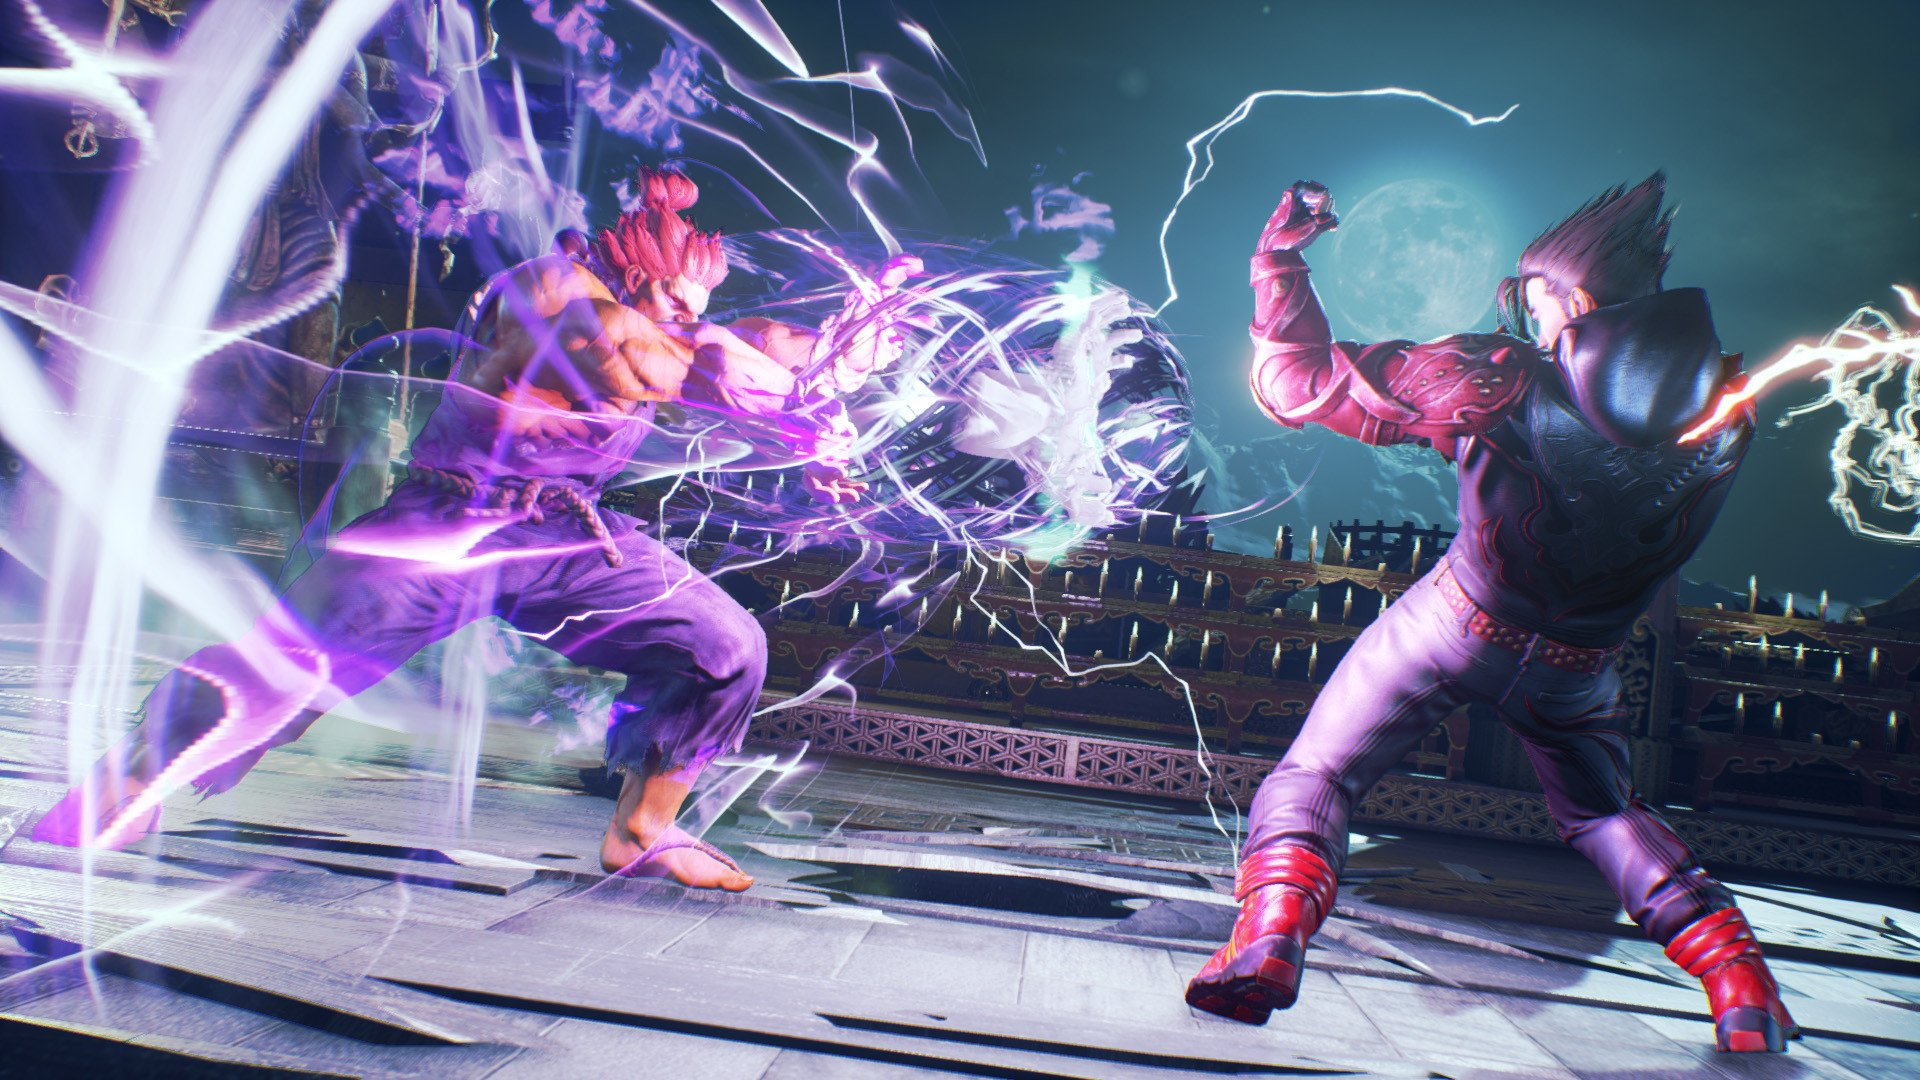 Tekken 7 Season 2 patch notes prepare for Thursday launch